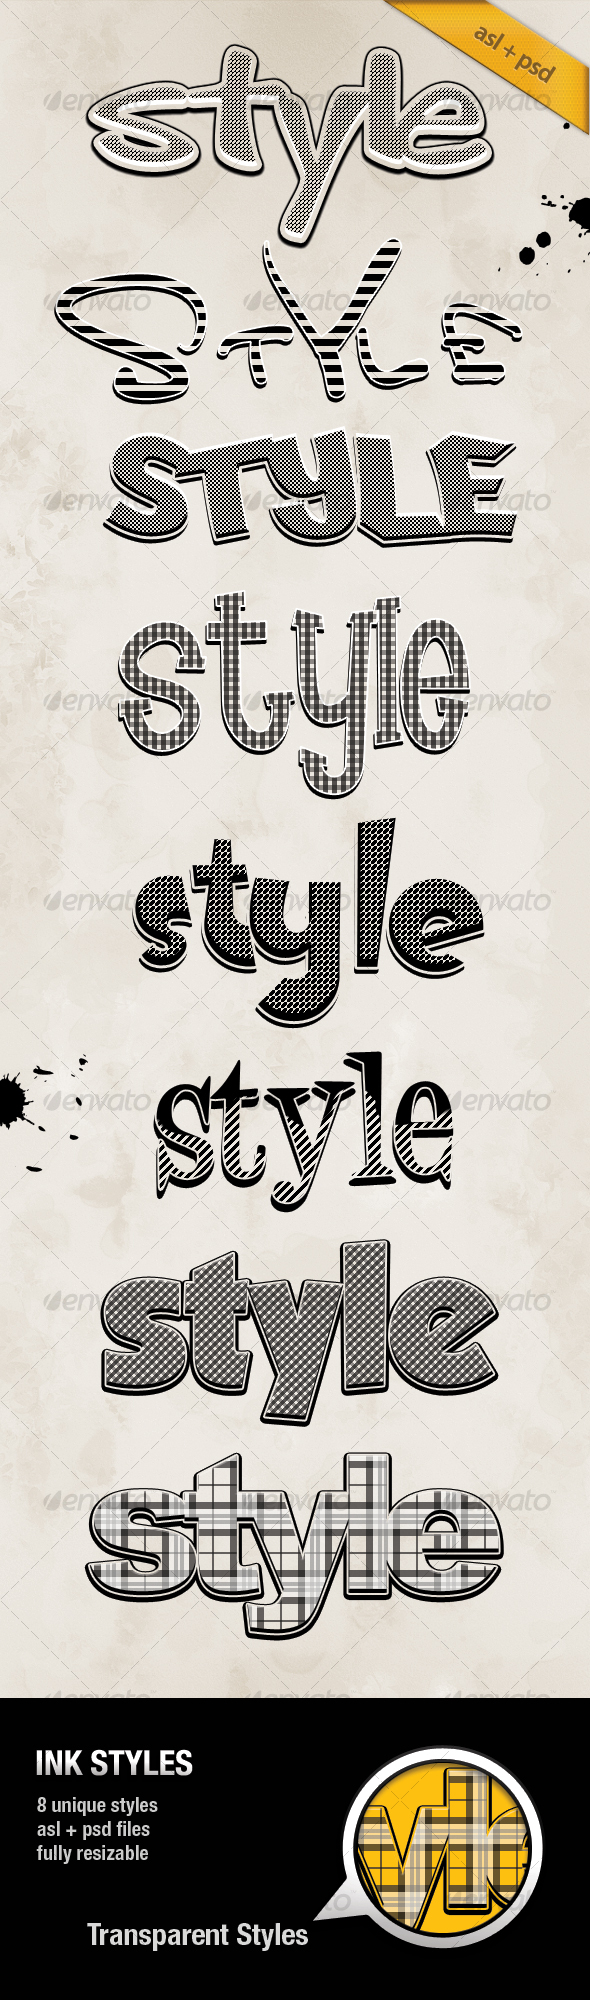 INK Styles - Text Effects Styles